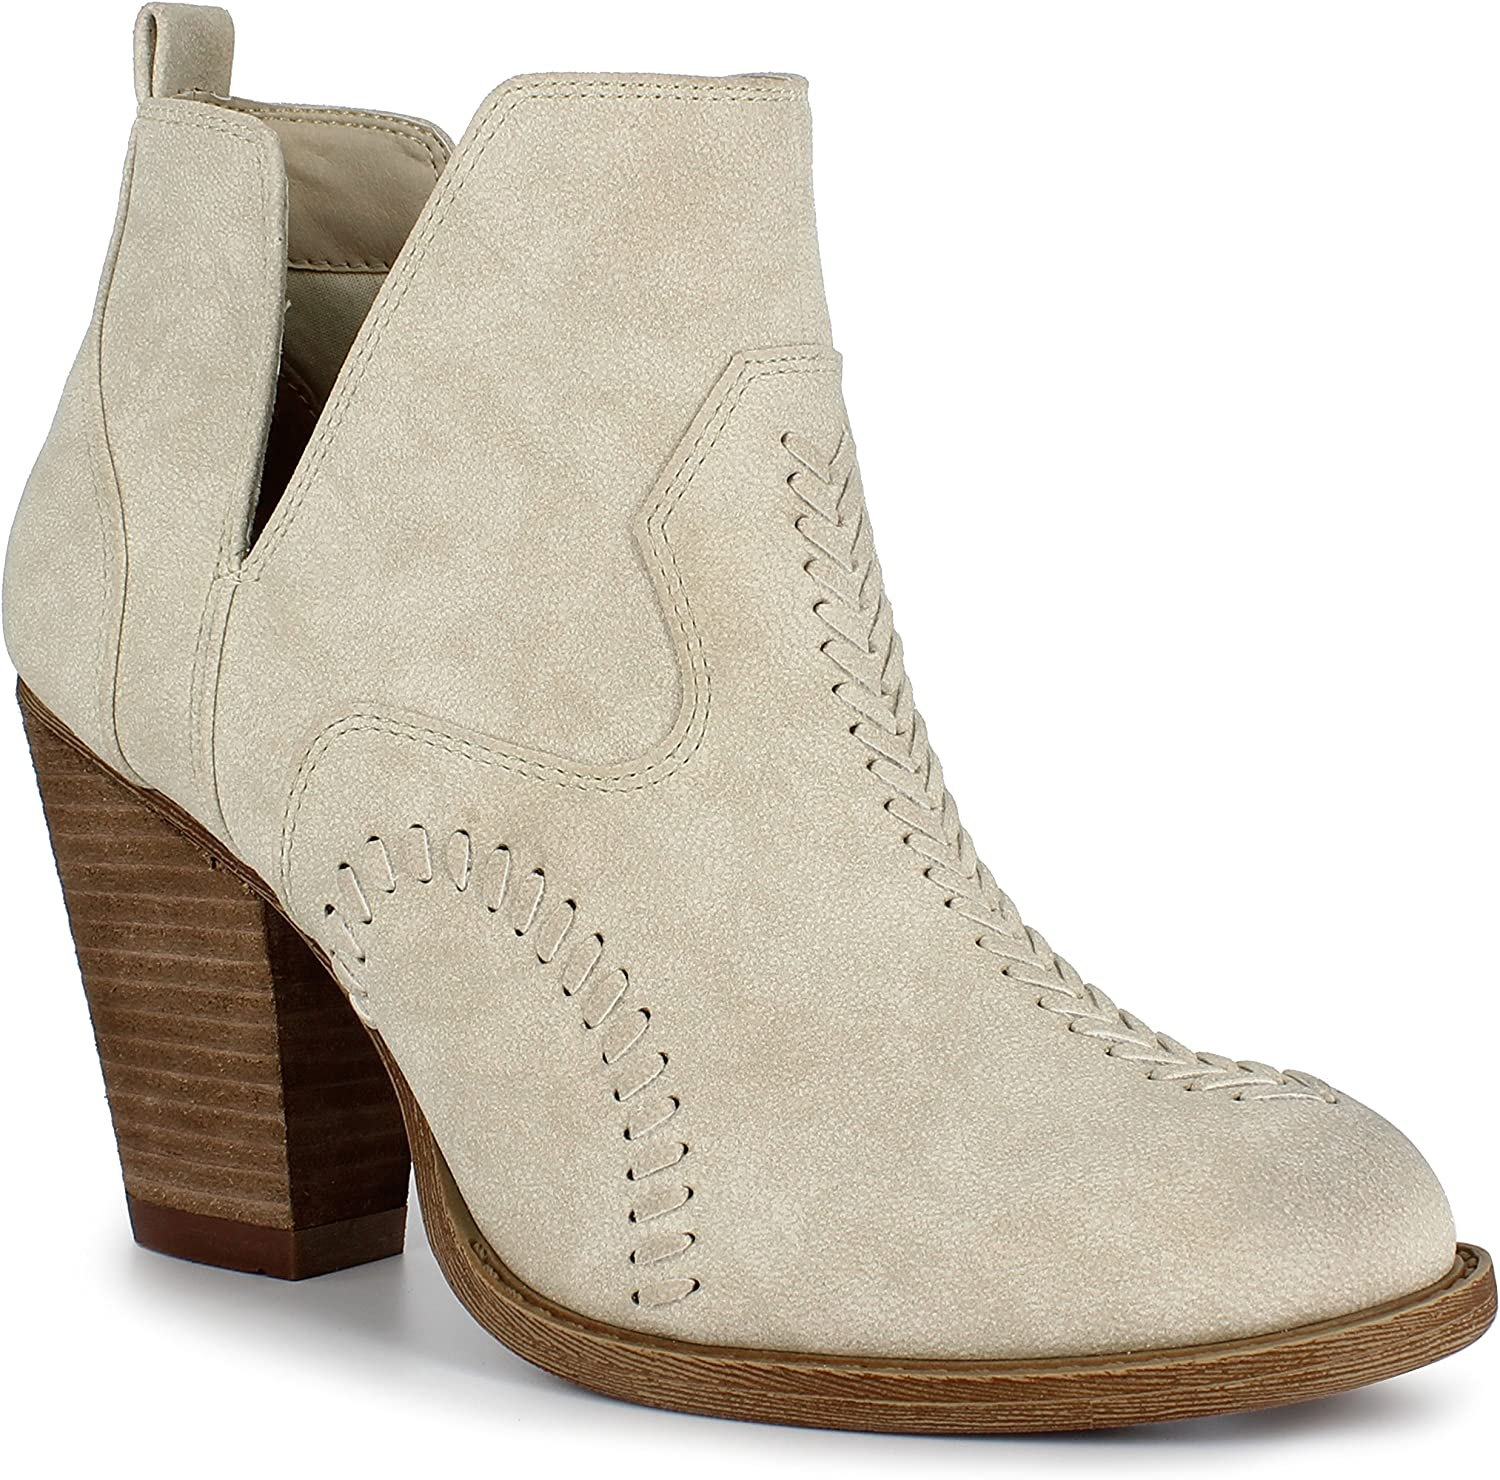 Amazon Com Daisy Fuentes Waverly Suede Boots Fashion Heel Textile All Vegan Construction Shoes Poshmark makes shopping fun, affordable & easy! daisy fuentes waverly suede boots